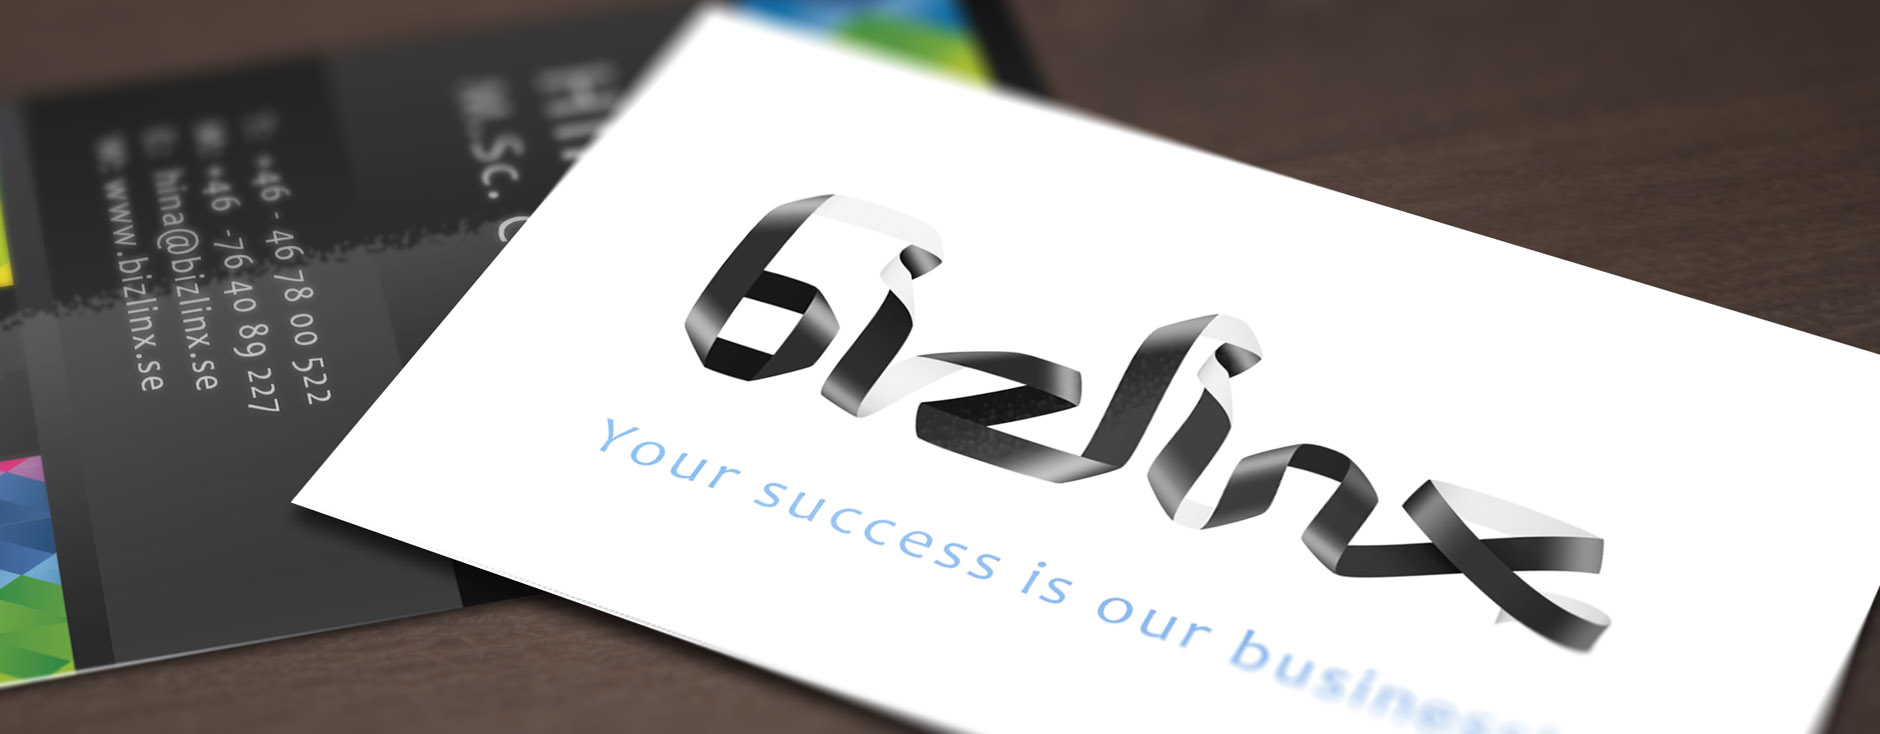 Latest designs: Logotype for Bizlinx